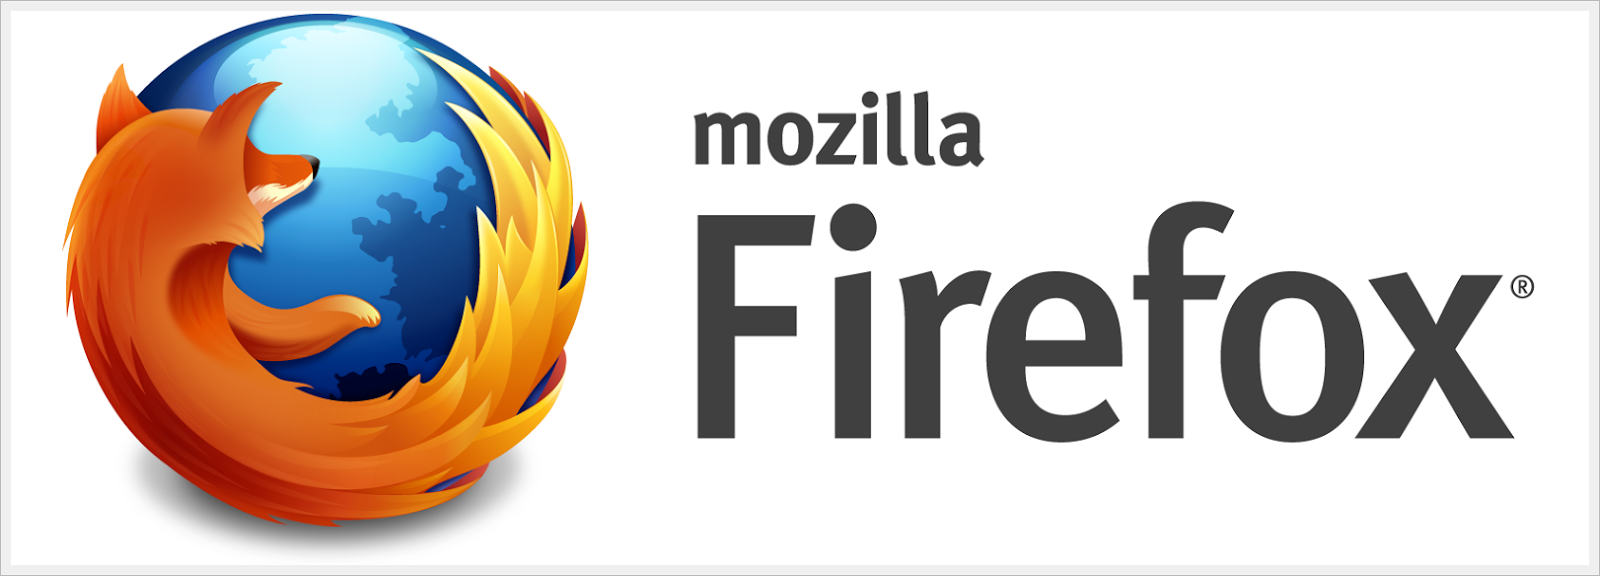 Mozilla is working on an experimental browser that is voice-controlled and can read articles